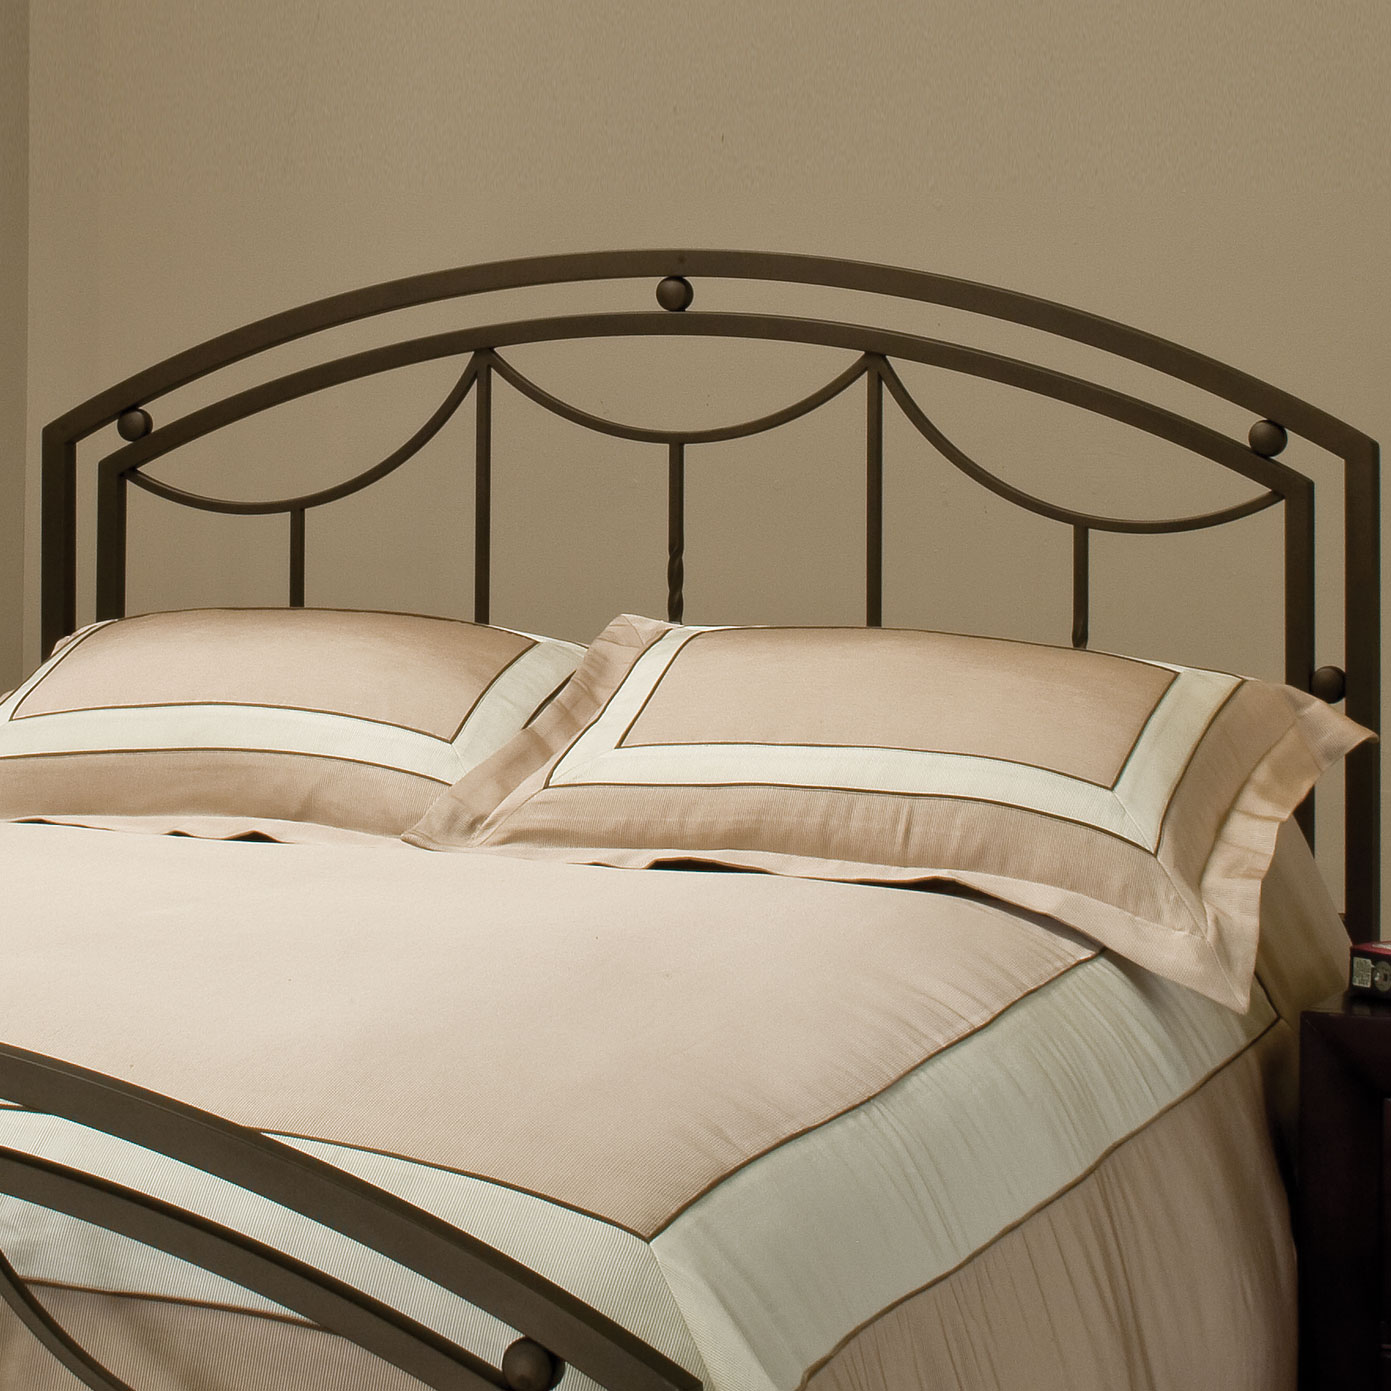 Full/Queen Headboard with Frame, 71½'x62'x55', BRONZE